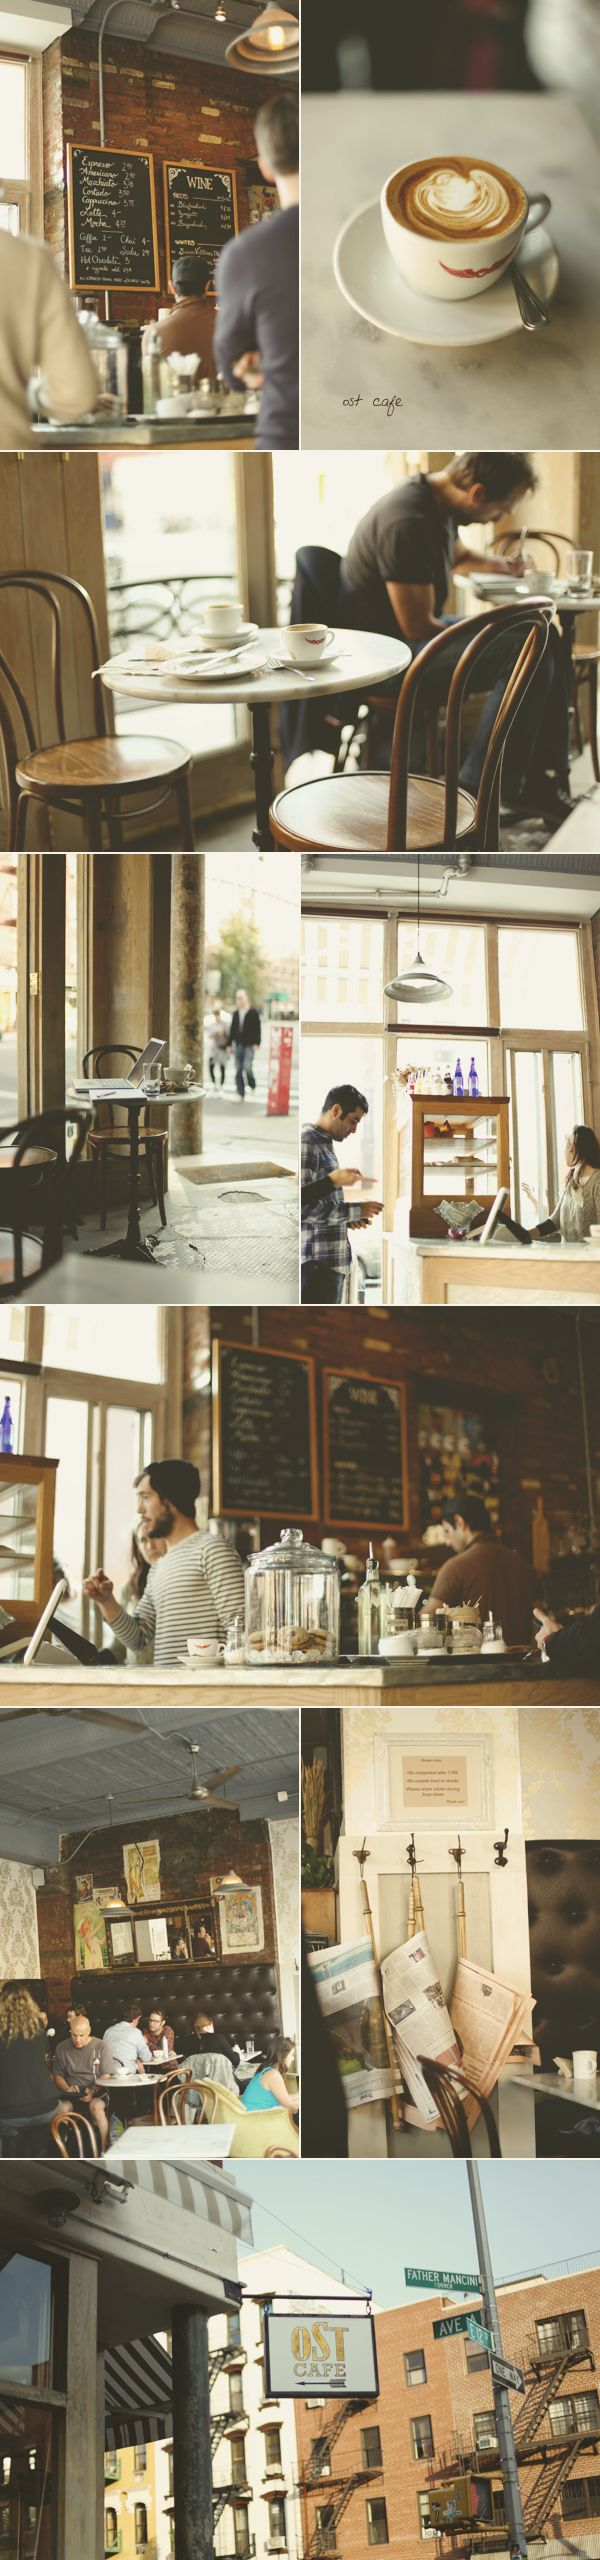 If NYC is ever a travel destination, this lovely cafe looks like it deserves to be near the top of the itinerary!